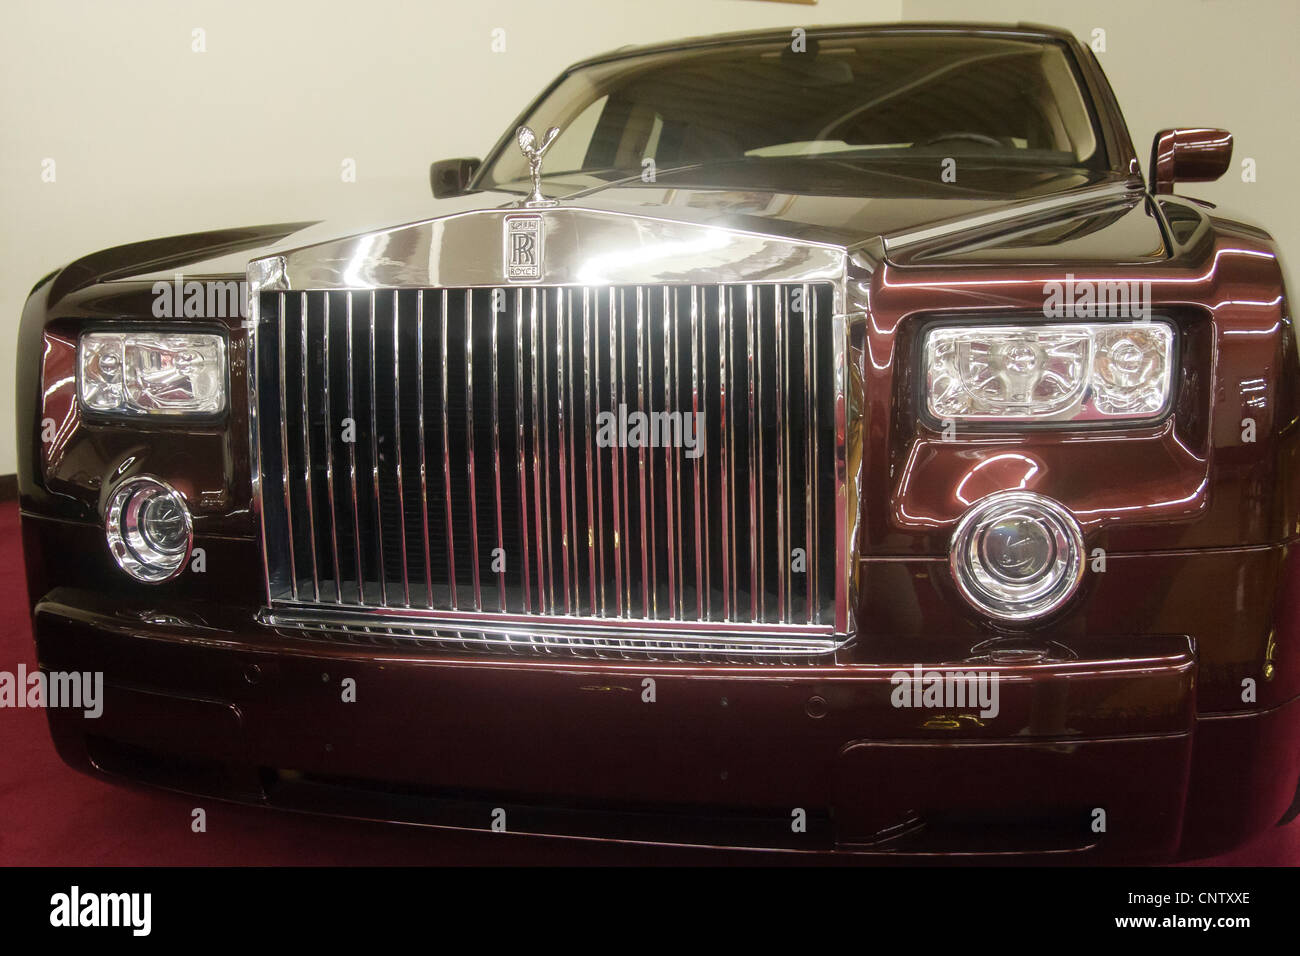 Rolls Royce Front Grill Stock Photos & Rolls Royce Front ...